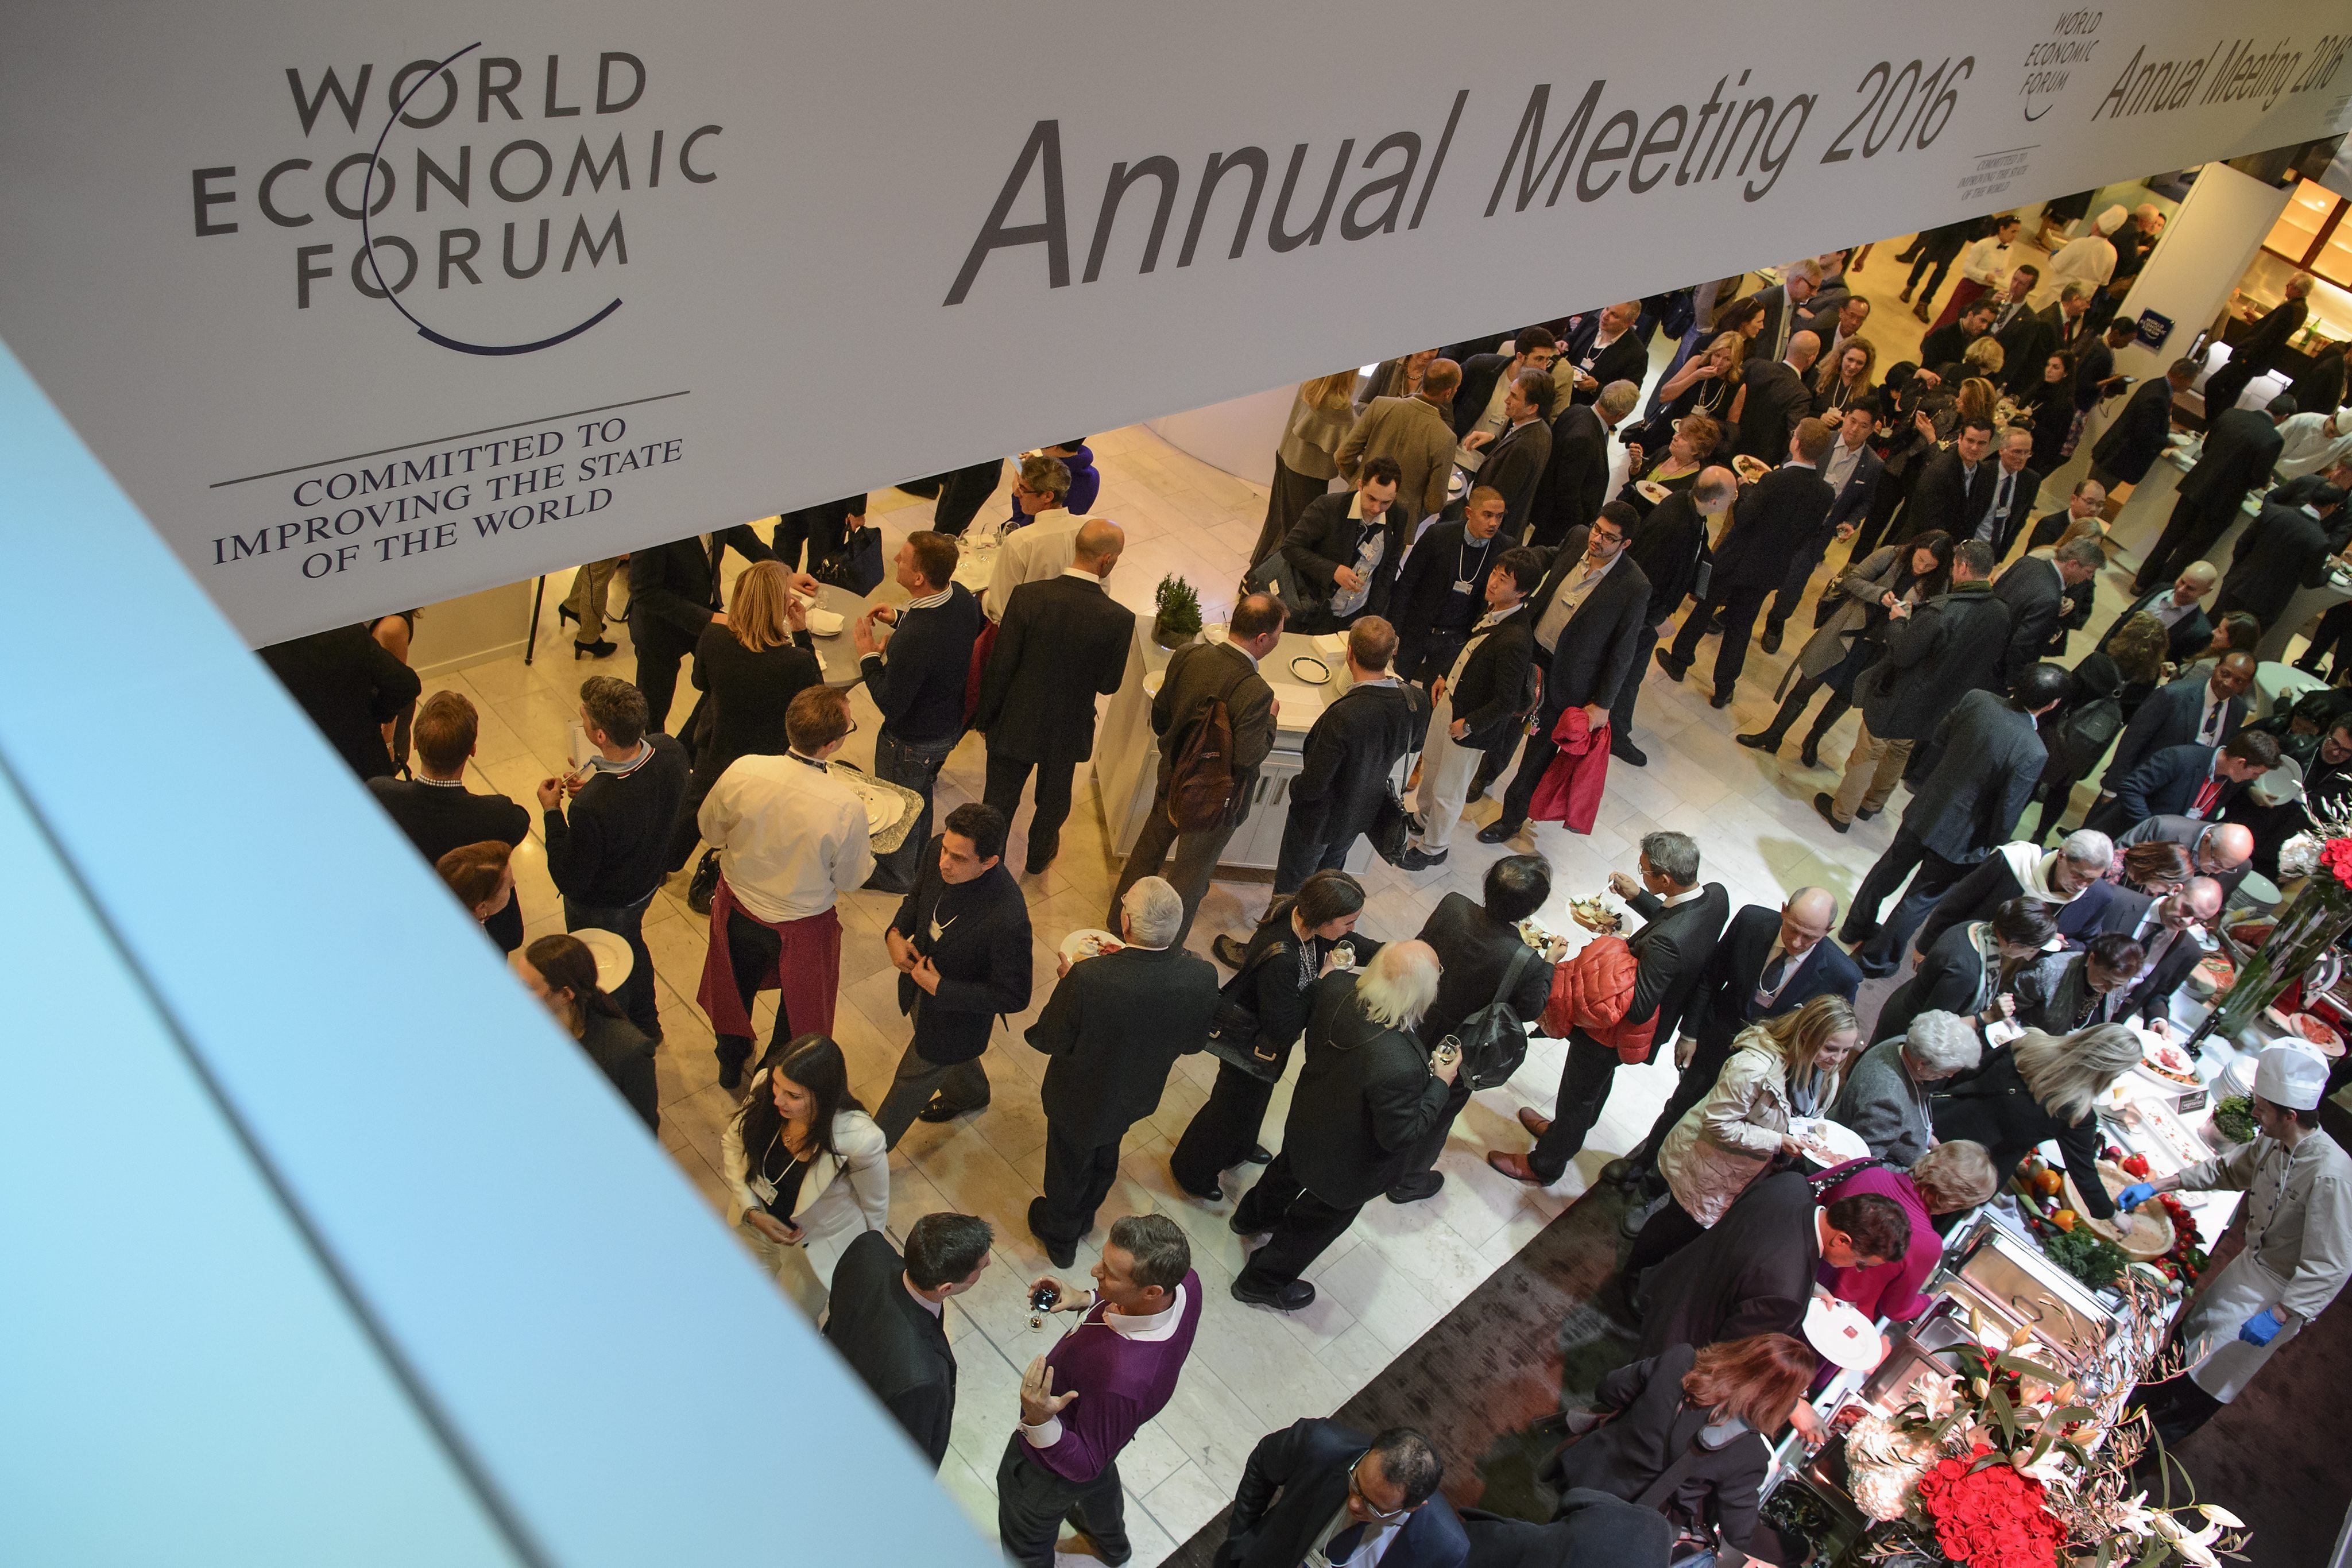 epa05111725 People gather for a dinner during the eve of the opening of the 46th Annual Meeting of the World Economic Forum, WEF, in Davos, Switzerland, 19 January 2016. The overarching theme of the meeting, which is expected to gather some 2,500 leading politicians, UN executives, heads of major corporations, NGO leaders and artists at the annual four-day gathering taking place from 20 to 23 January, is 'Mastering the Fourth Industrial Revolution'. EPA/JEAN-CHRISTOPHE BOTT